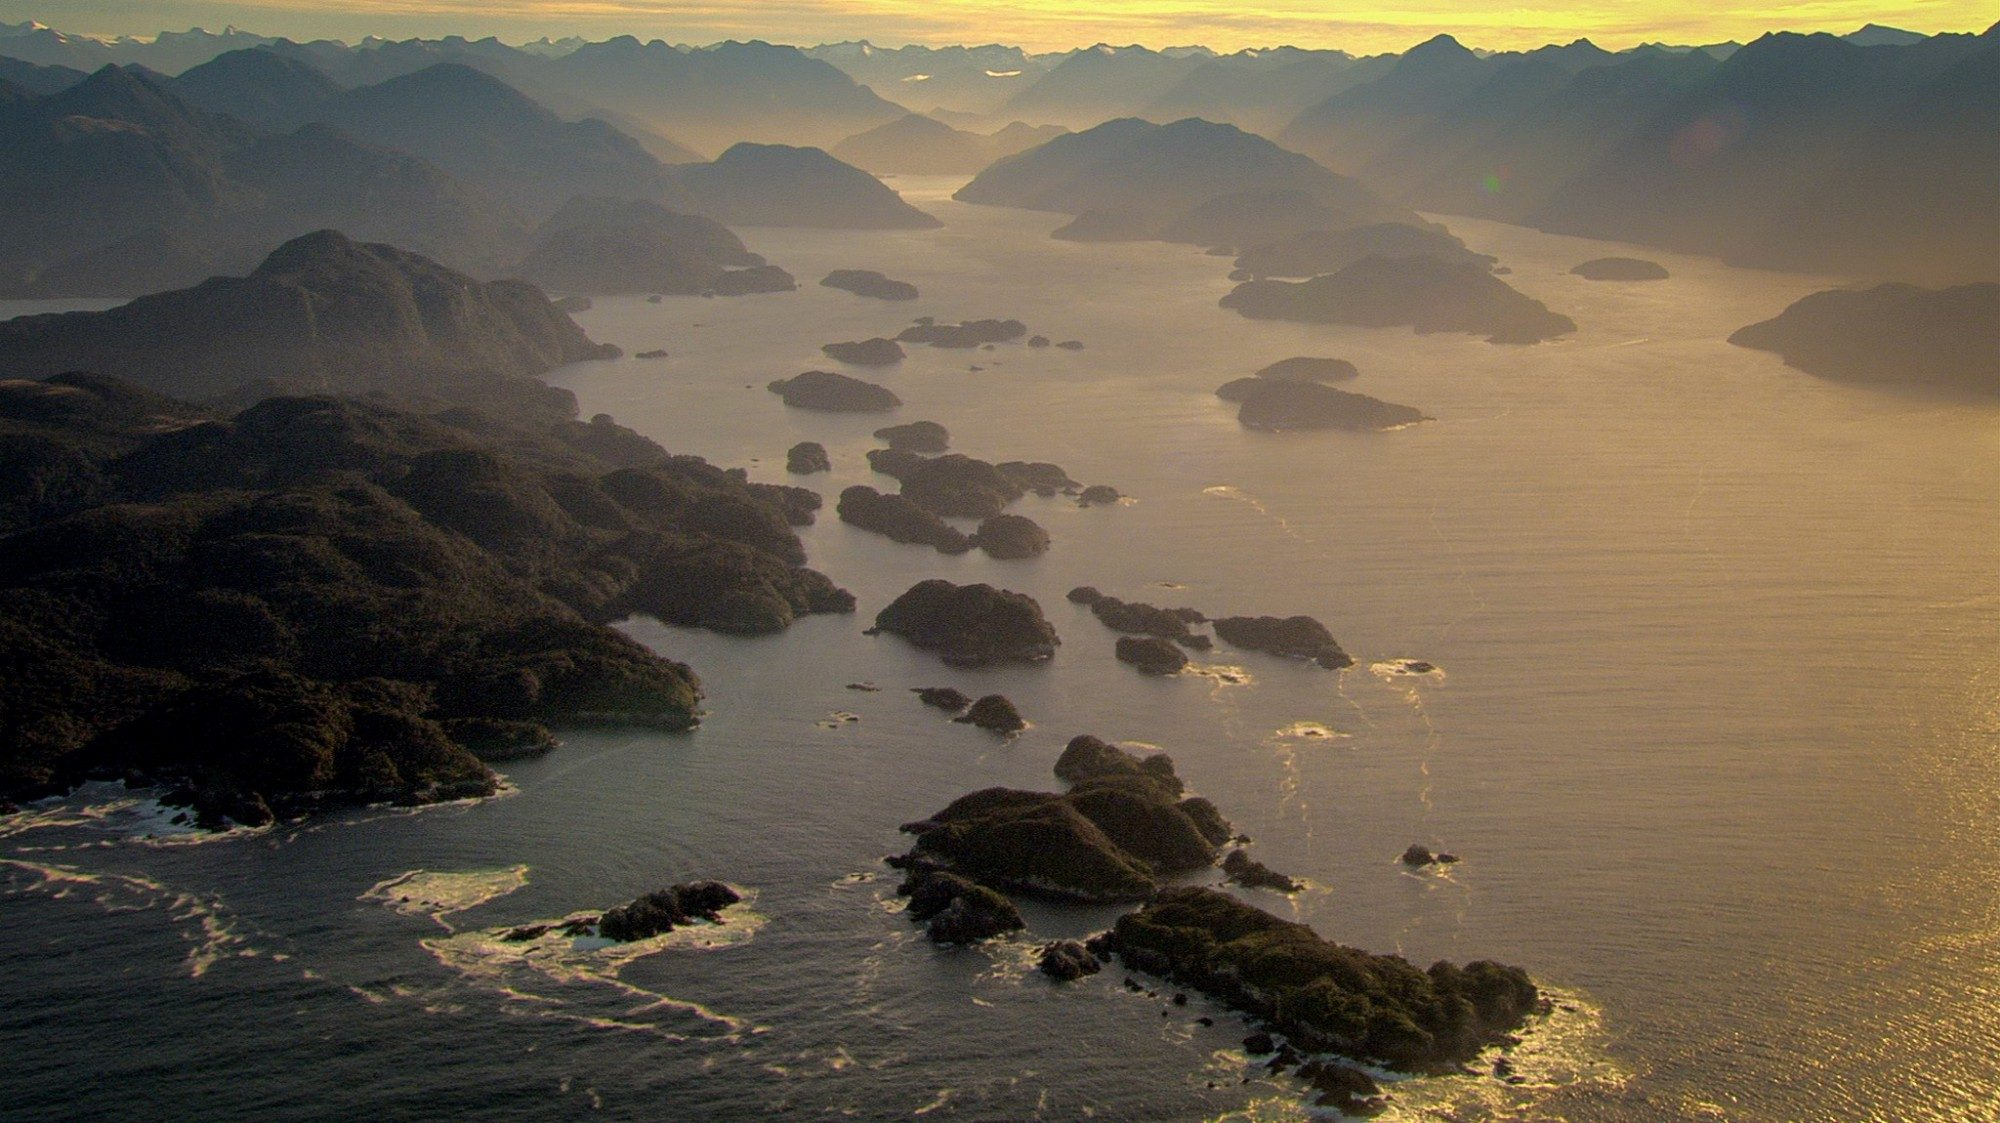 Looking over the sea and into the fiords